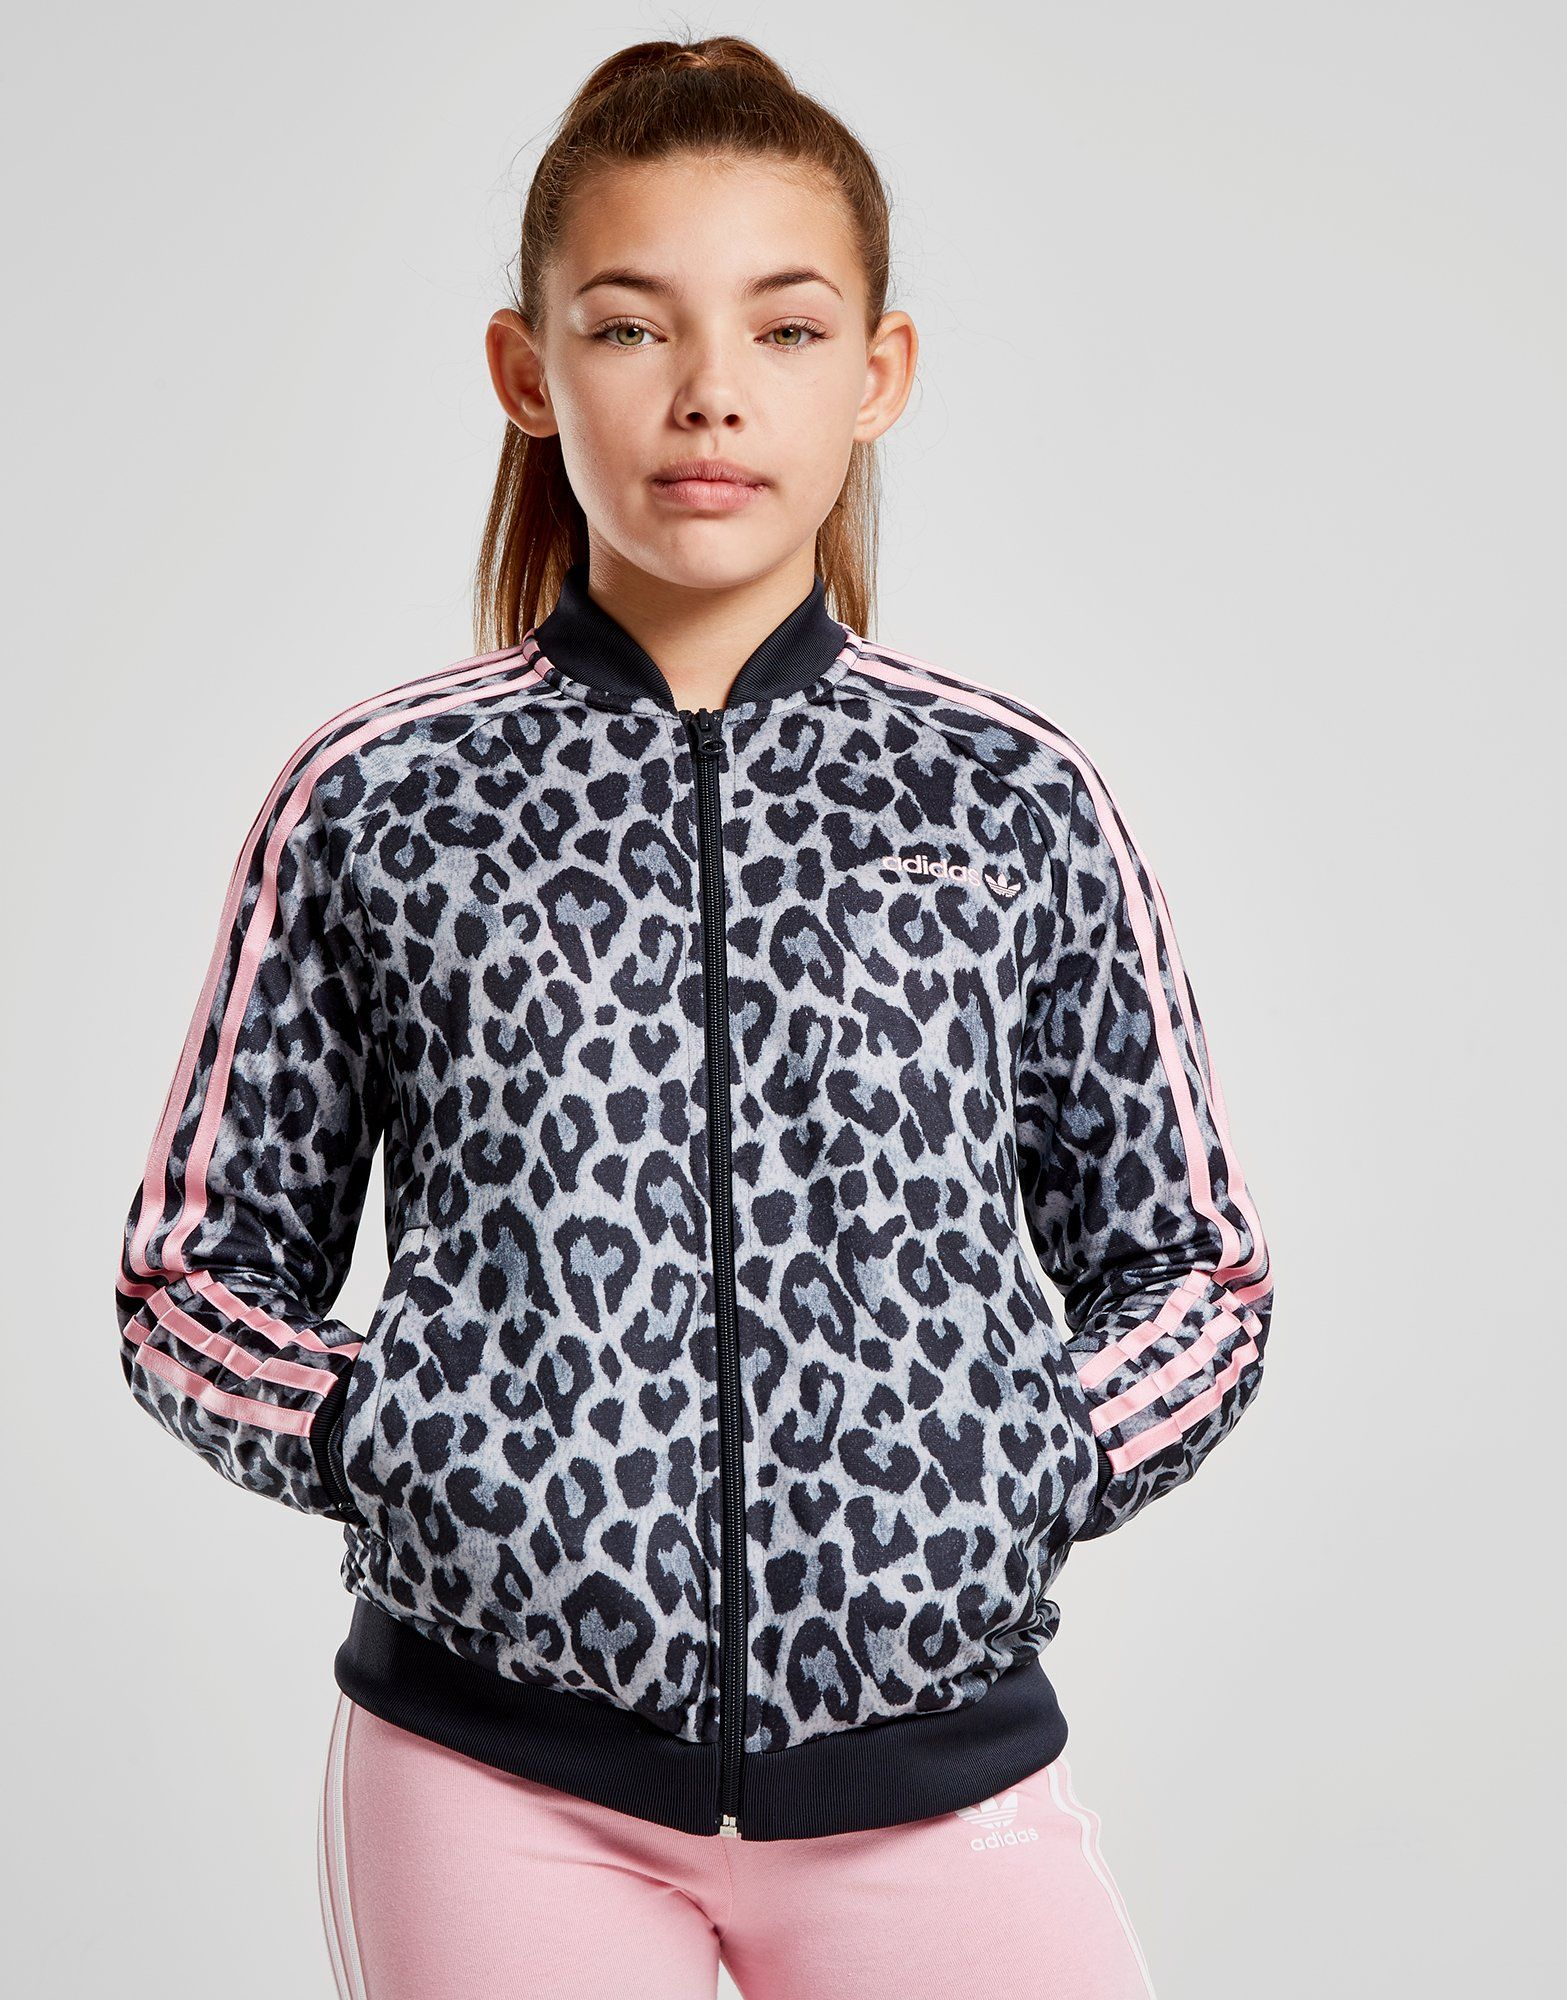 adidas Originals Veste Imprimé Léopard Junior